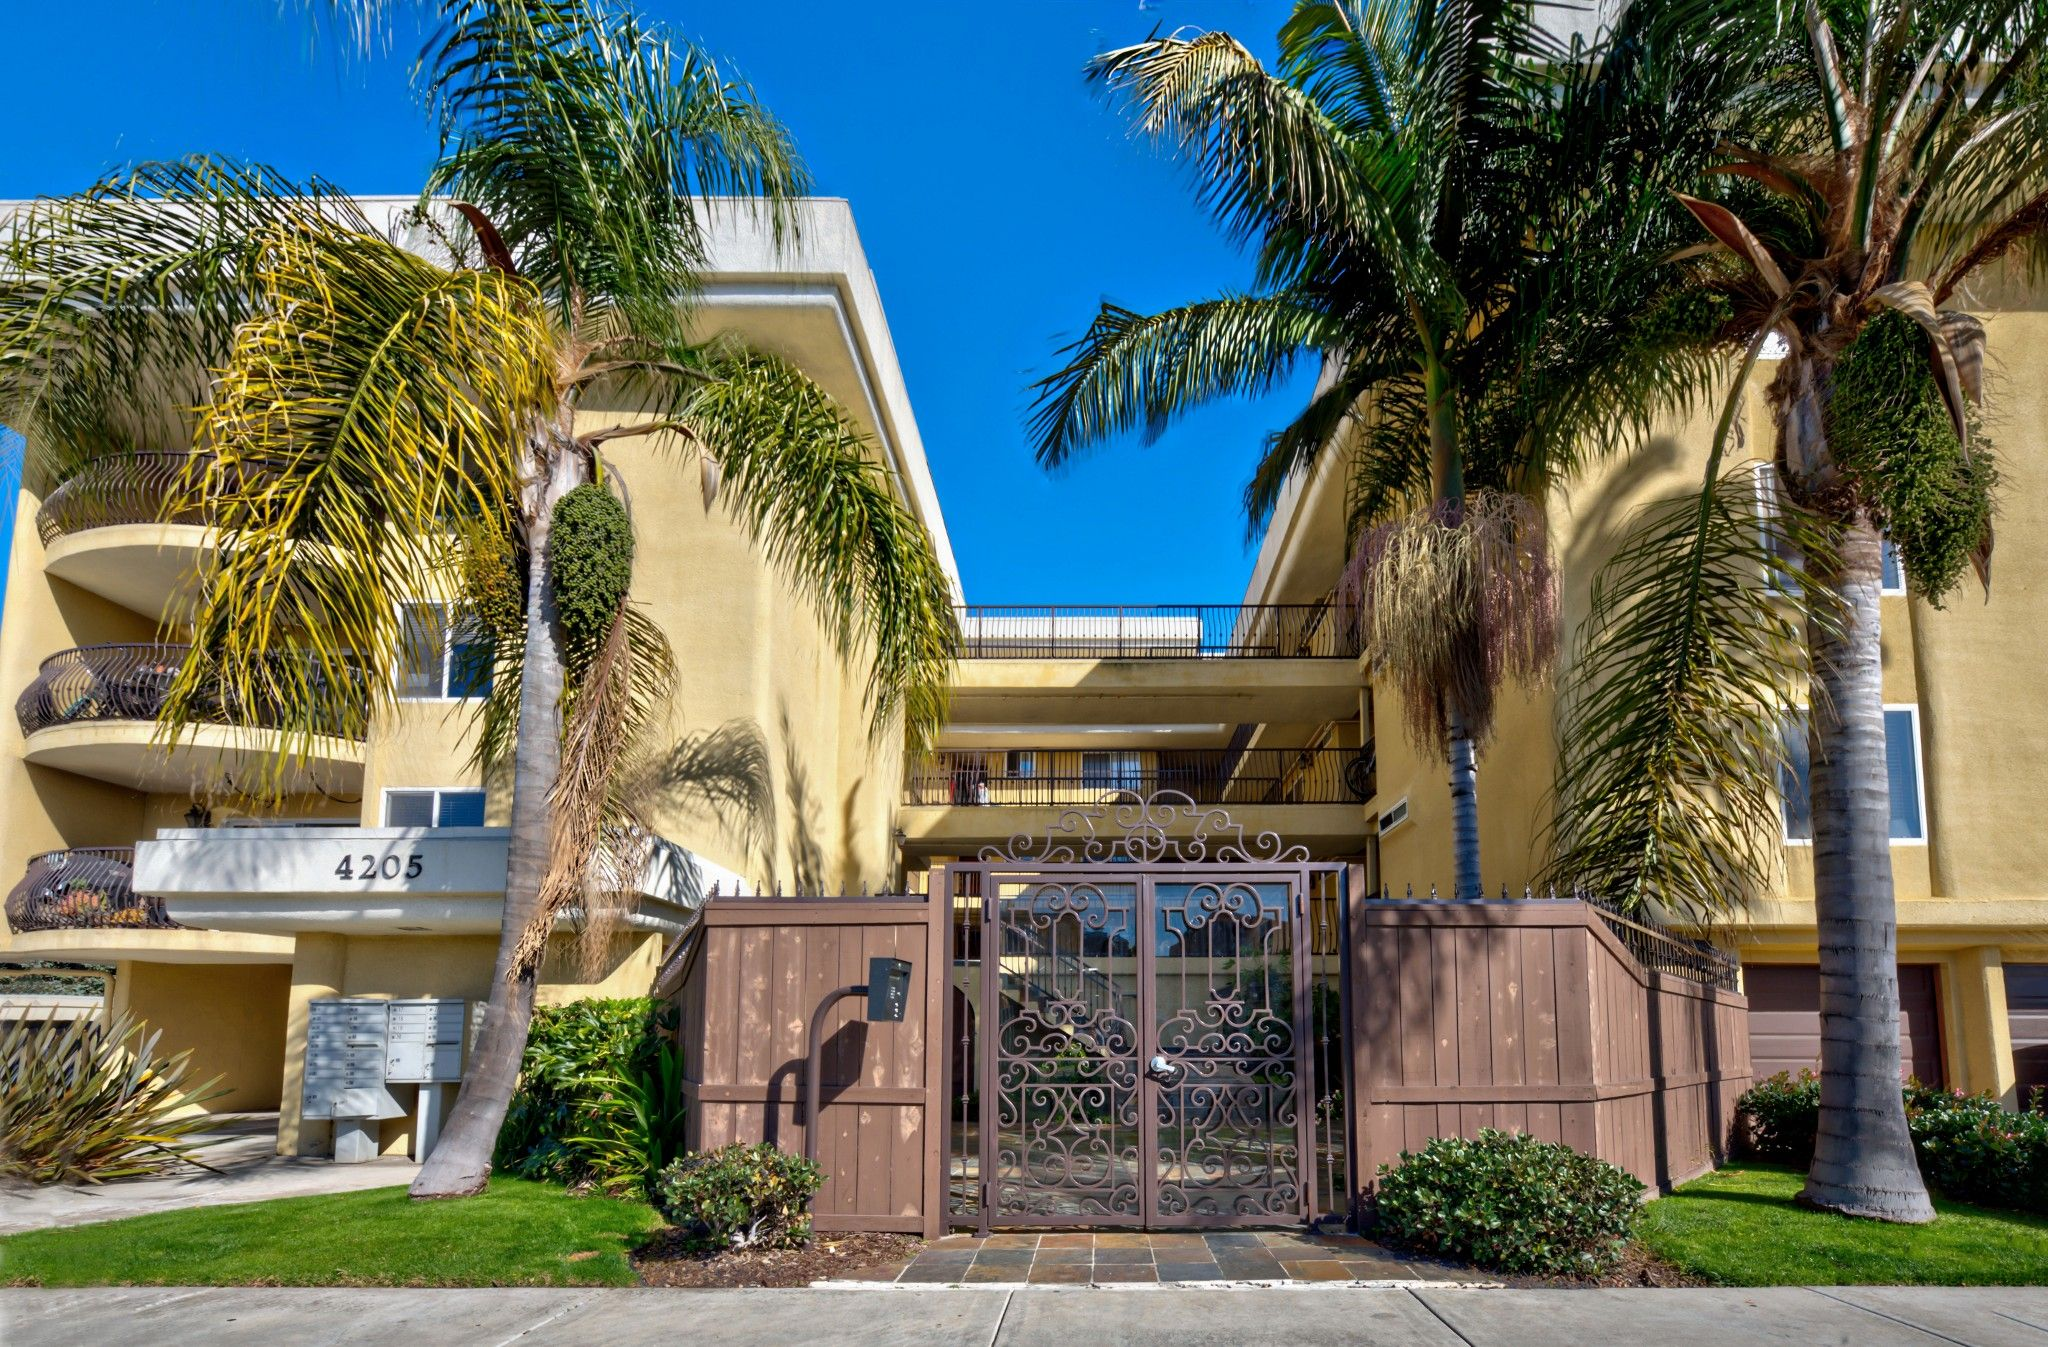 Main Photo: Condo for sale : 1 bedrooms : 4205 Lamont St #8 in San Diego